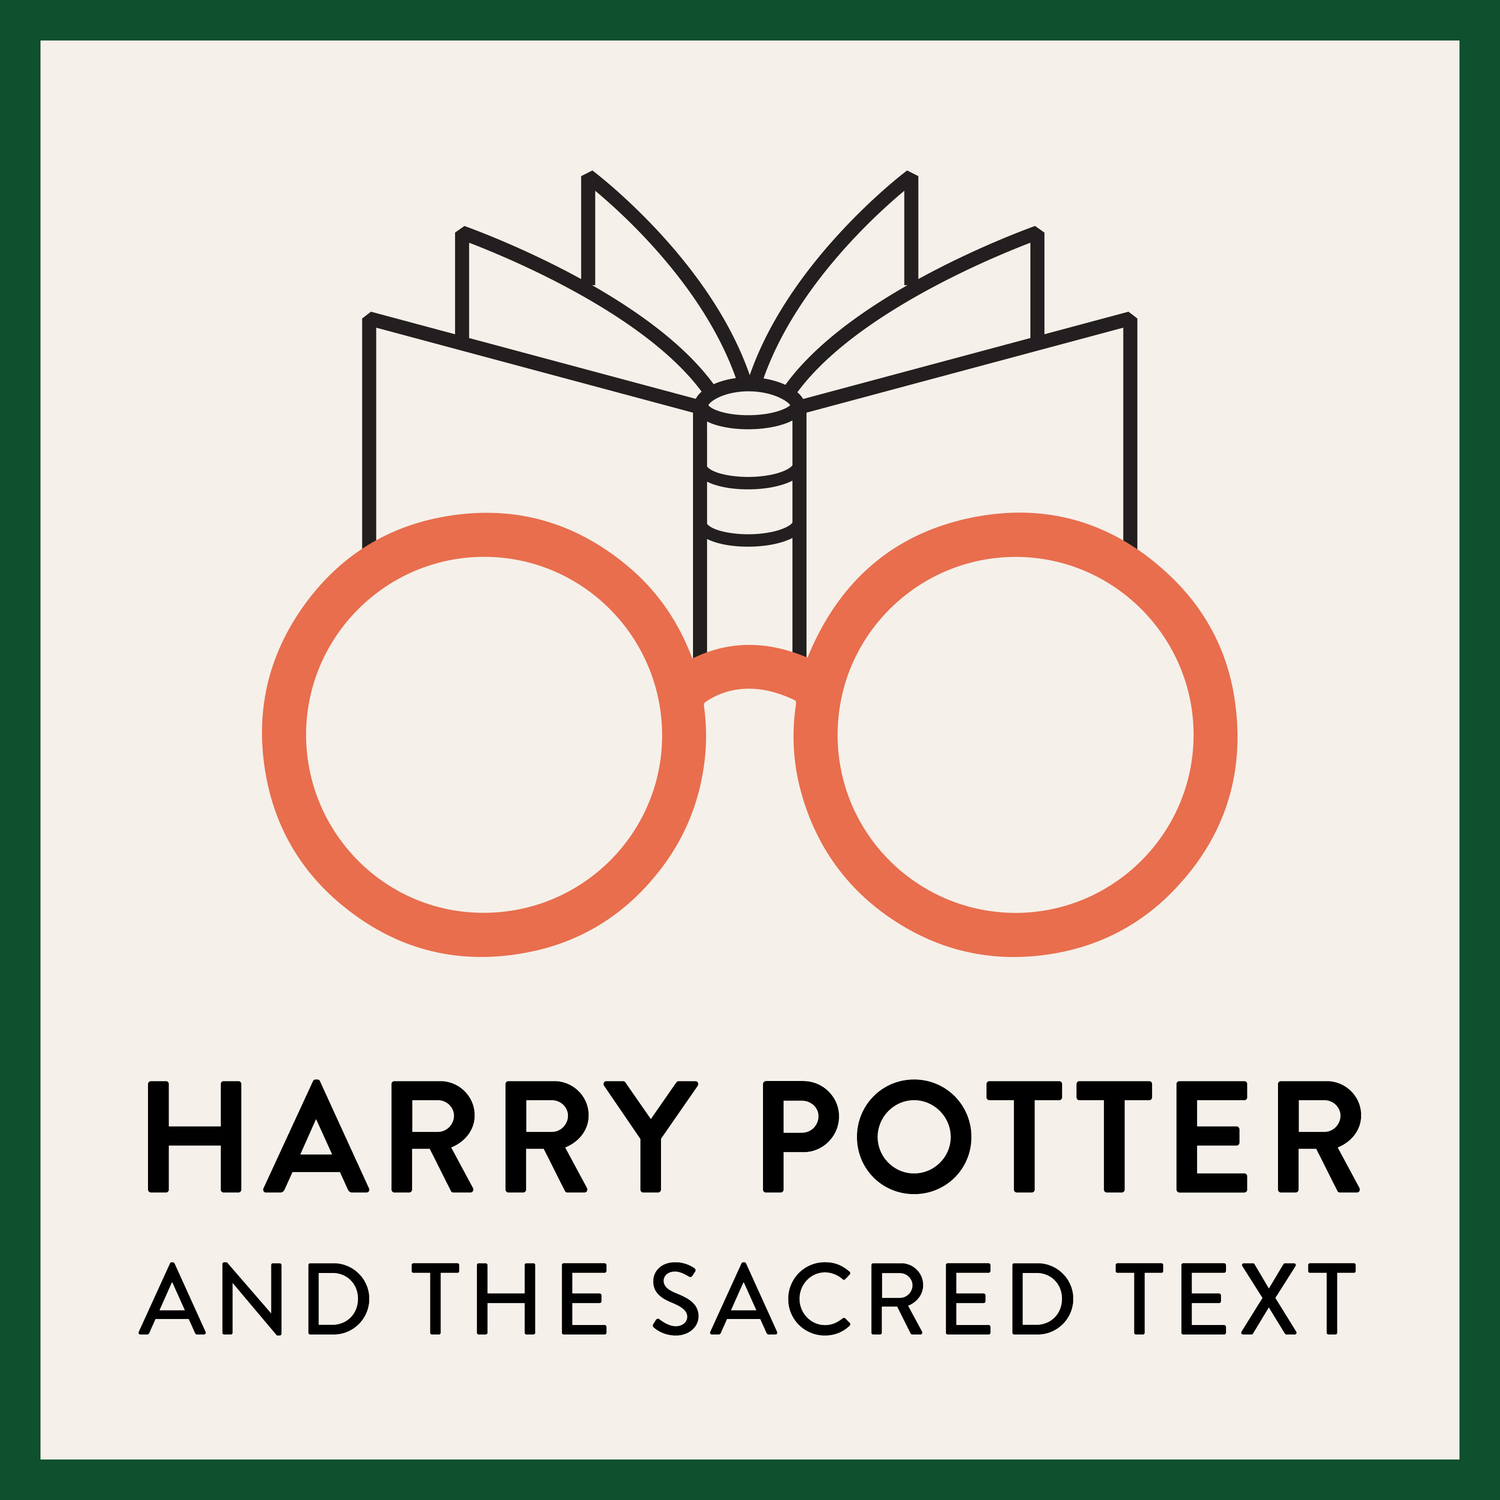 I have created communication strategies for a diverse group of clients, including popular podcast Harry Potter and the Sacred Text.